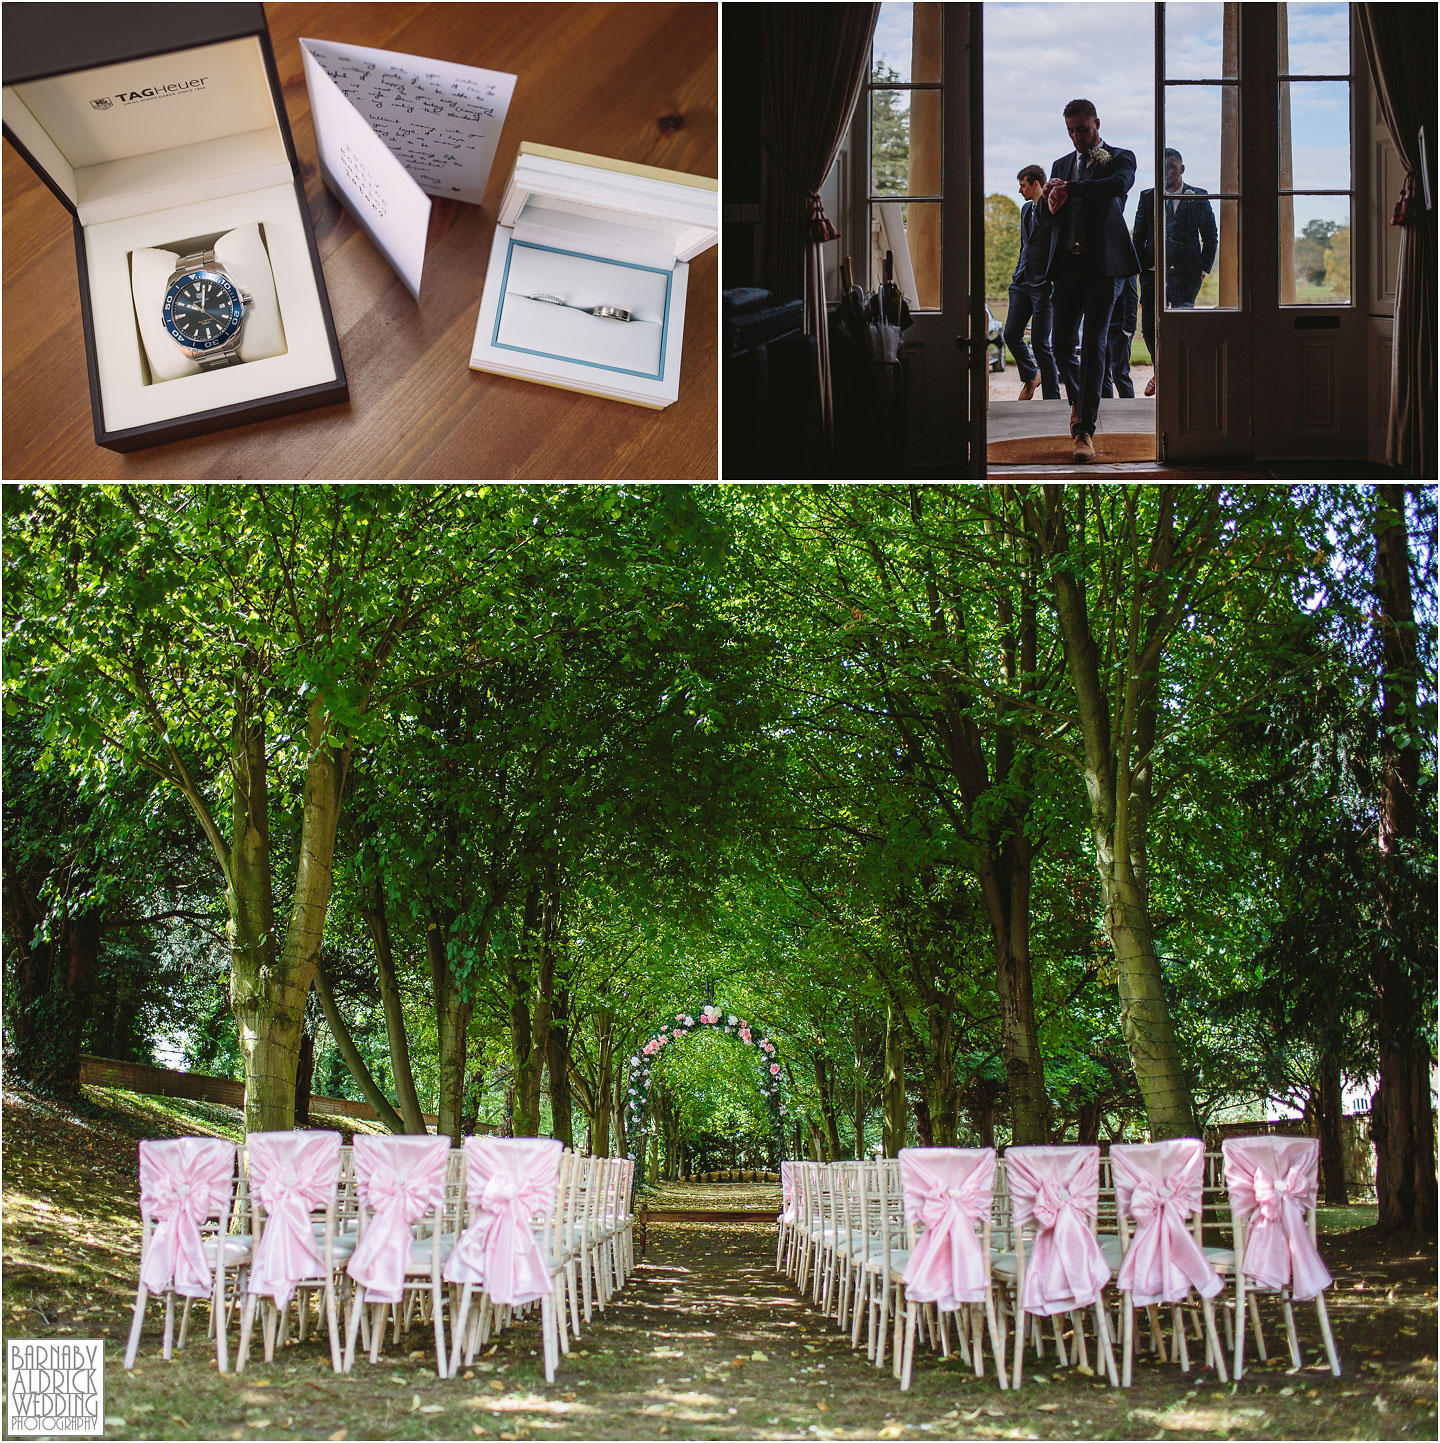 Sapphire Wedding ceremony in Yorkshire, Outdoor ceremony venue Saltmarshe Hall near Goole in East Yorkshire, Wedding photography at Saltmarshe Hall, East Yorkshire Wedding Photographer, sapphire Ceremonies in Yorkshire